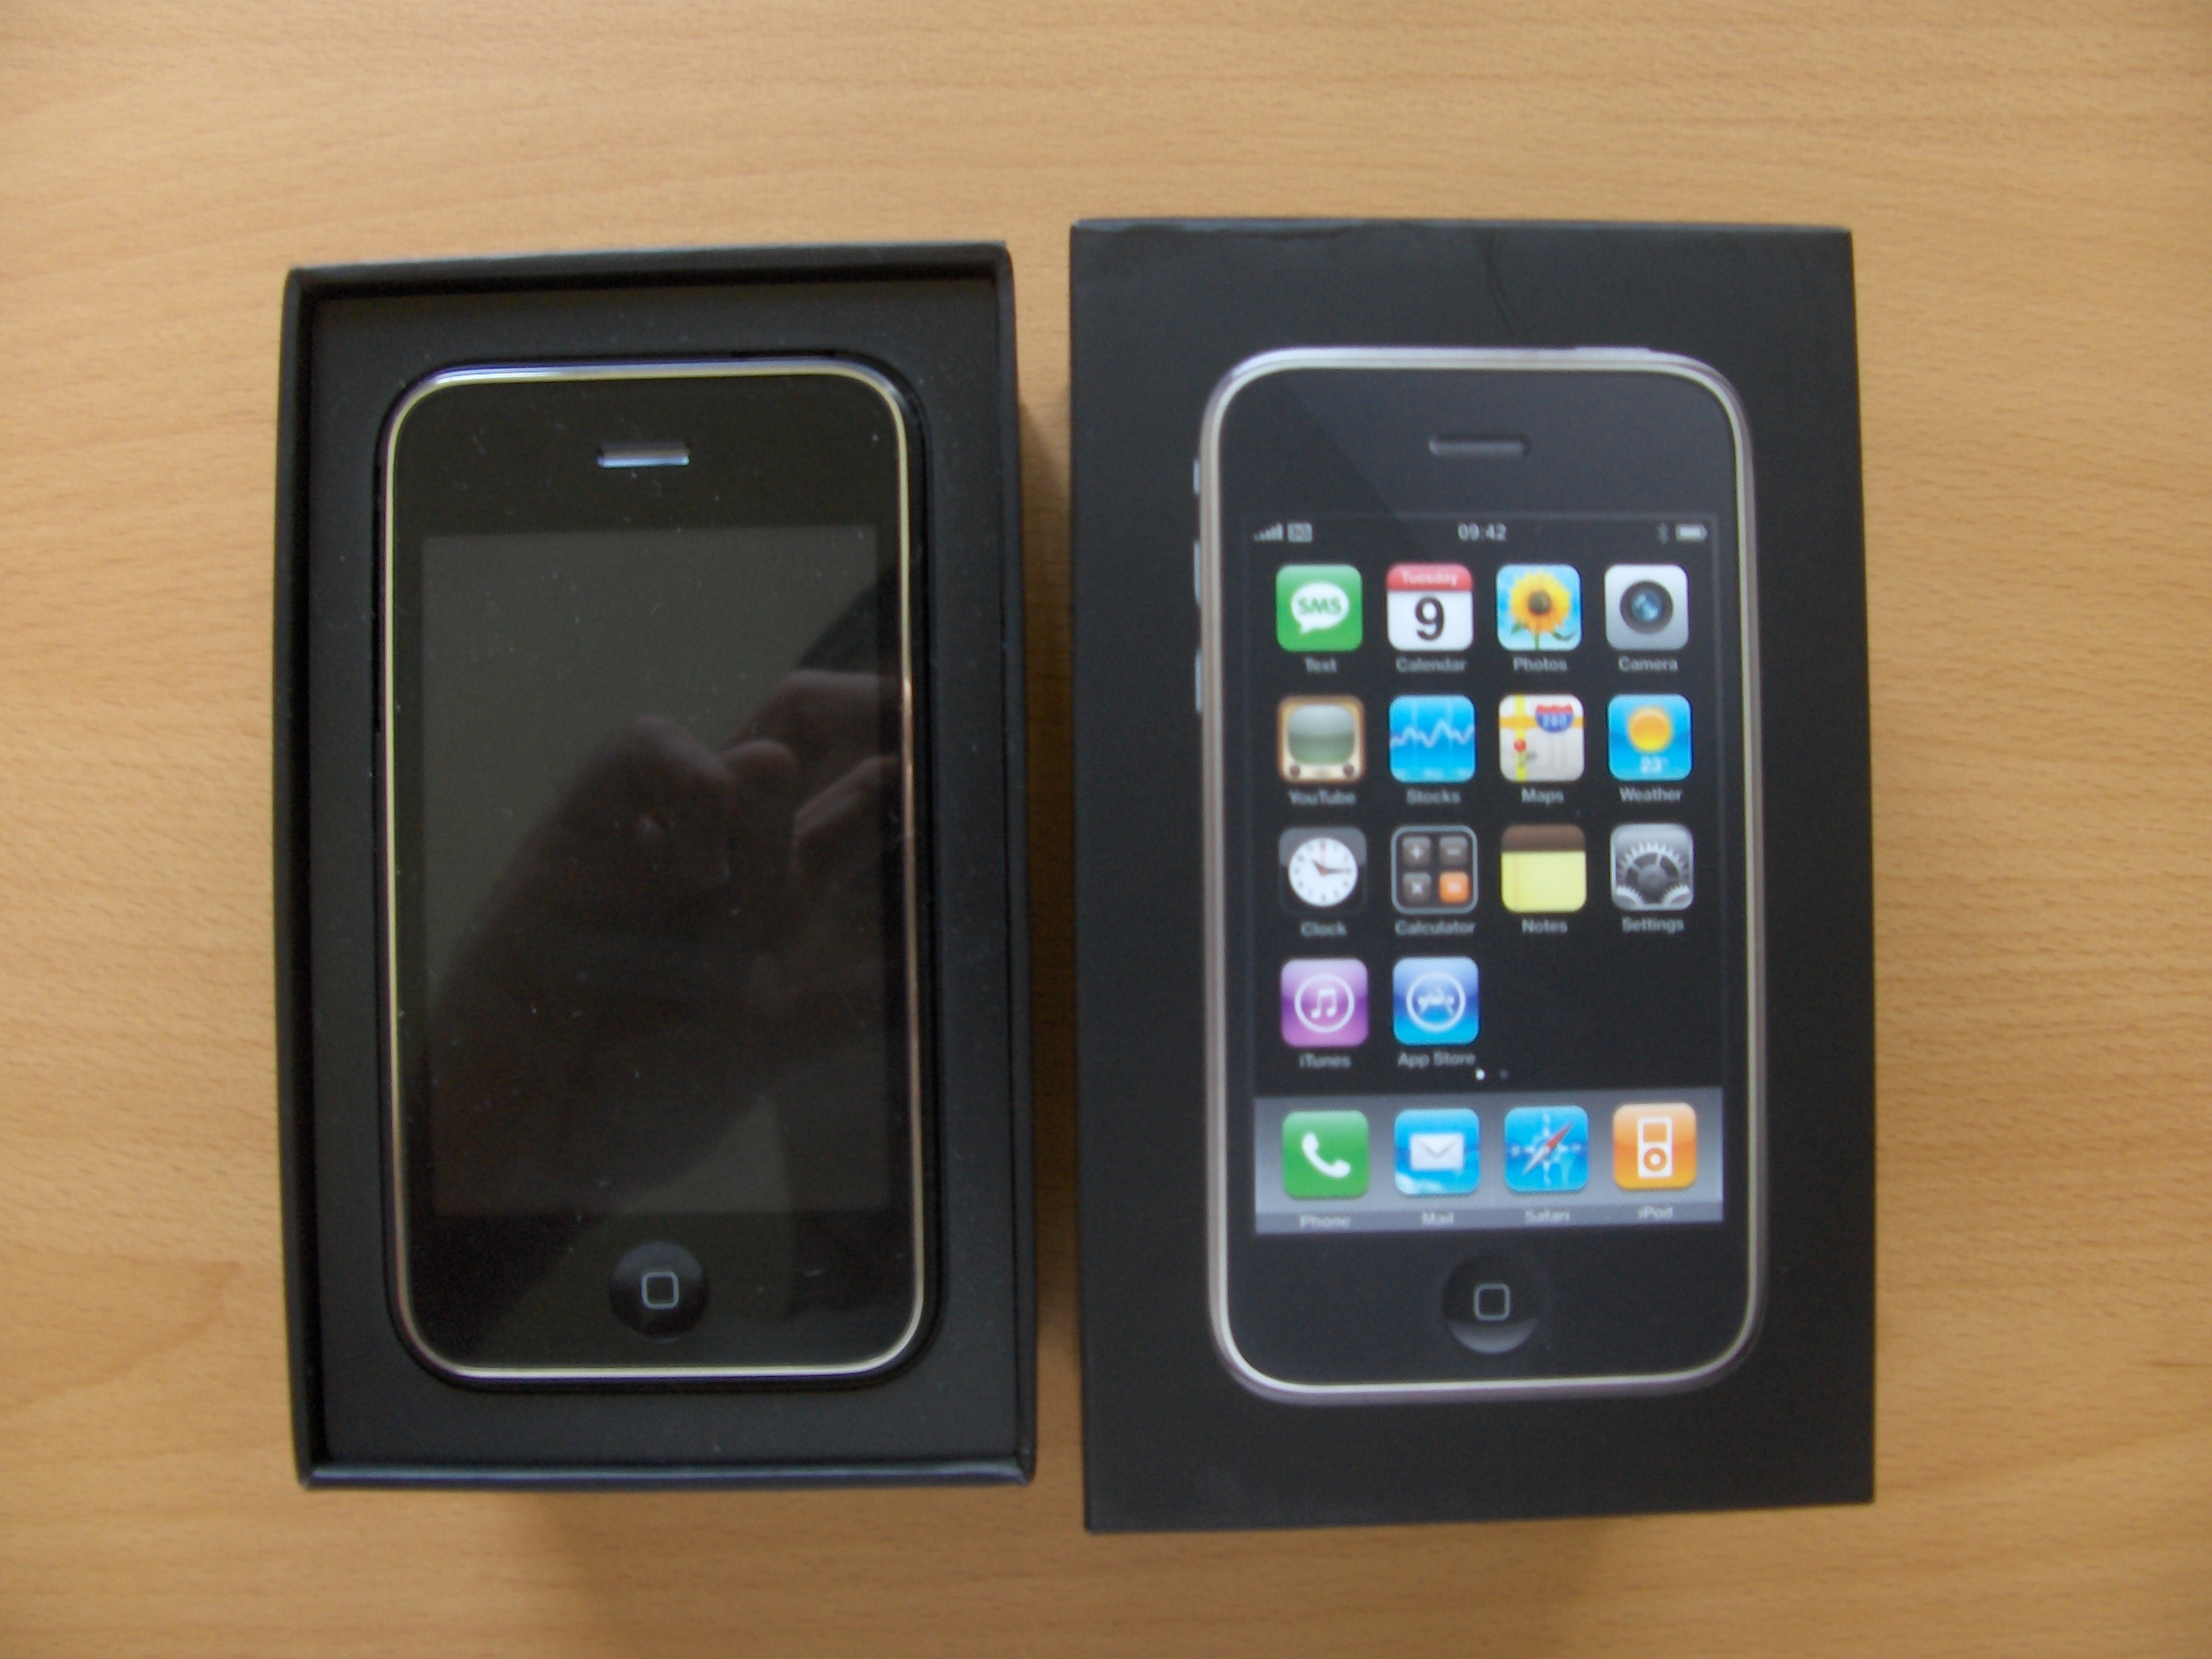 Hpim1873 300x225 apple iphone 3g review